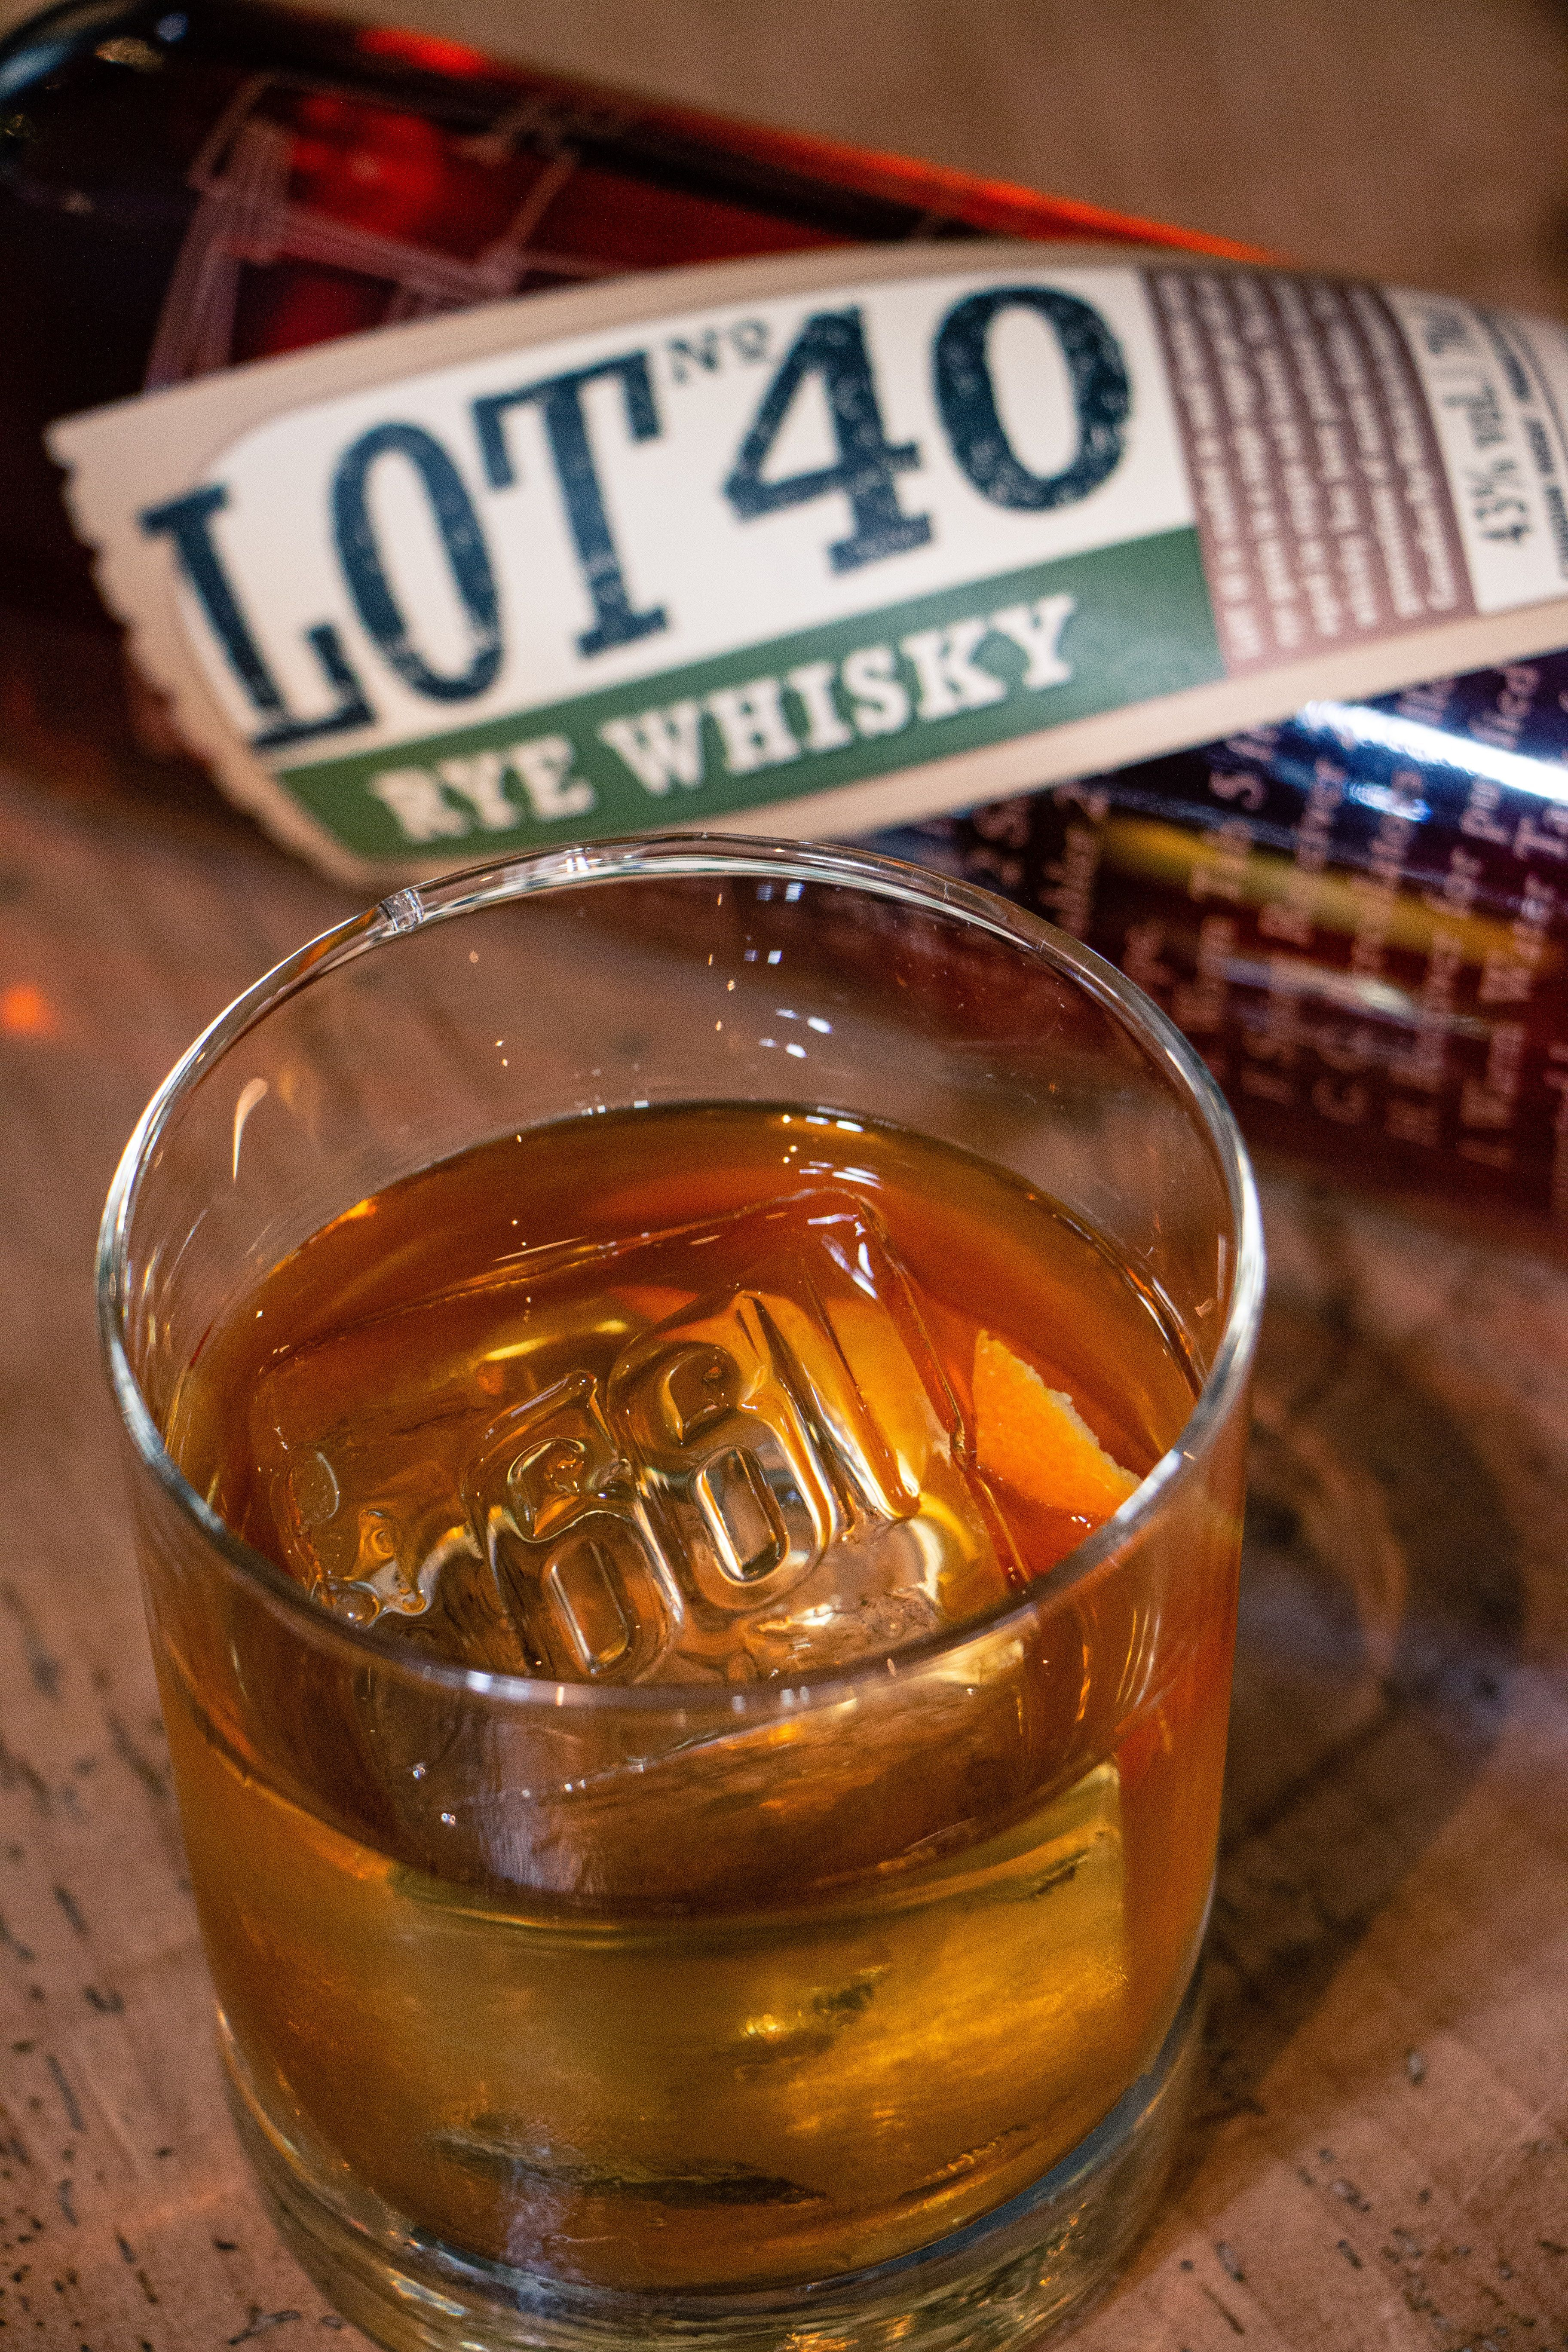 Lot.40.old.fashioned.1